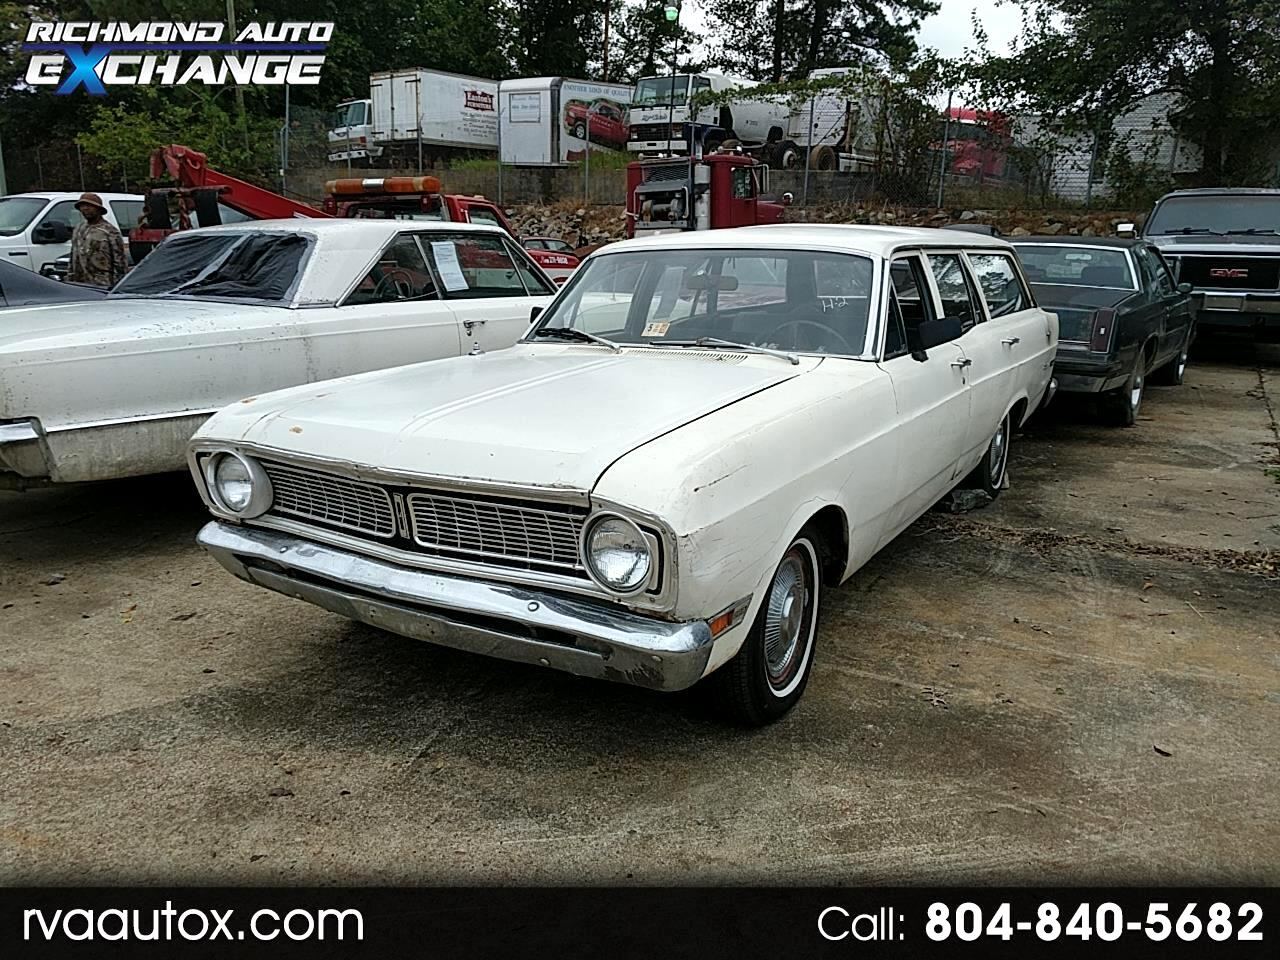 1968 Ford Falcon Base